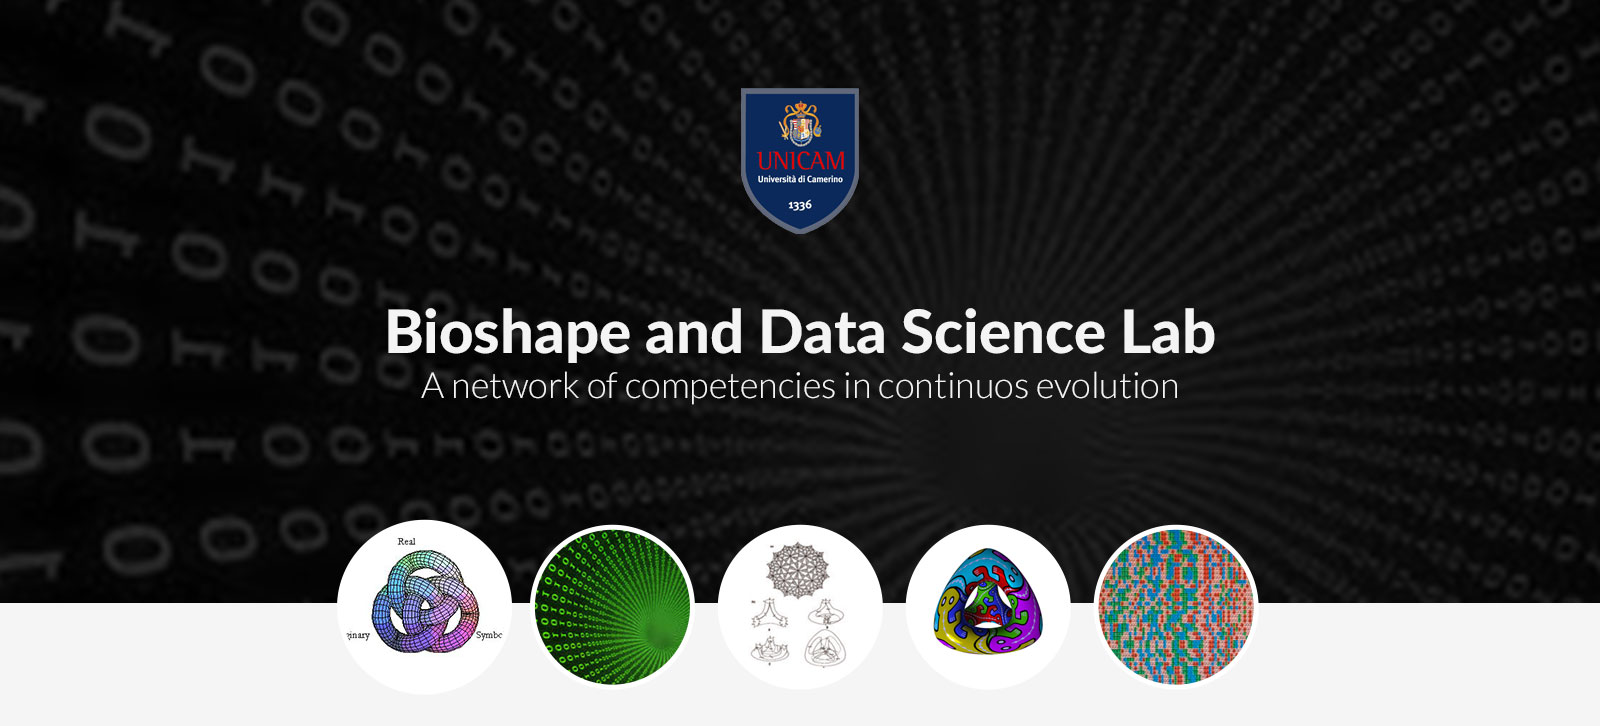 bioshape-and-data-science-lab.jpg